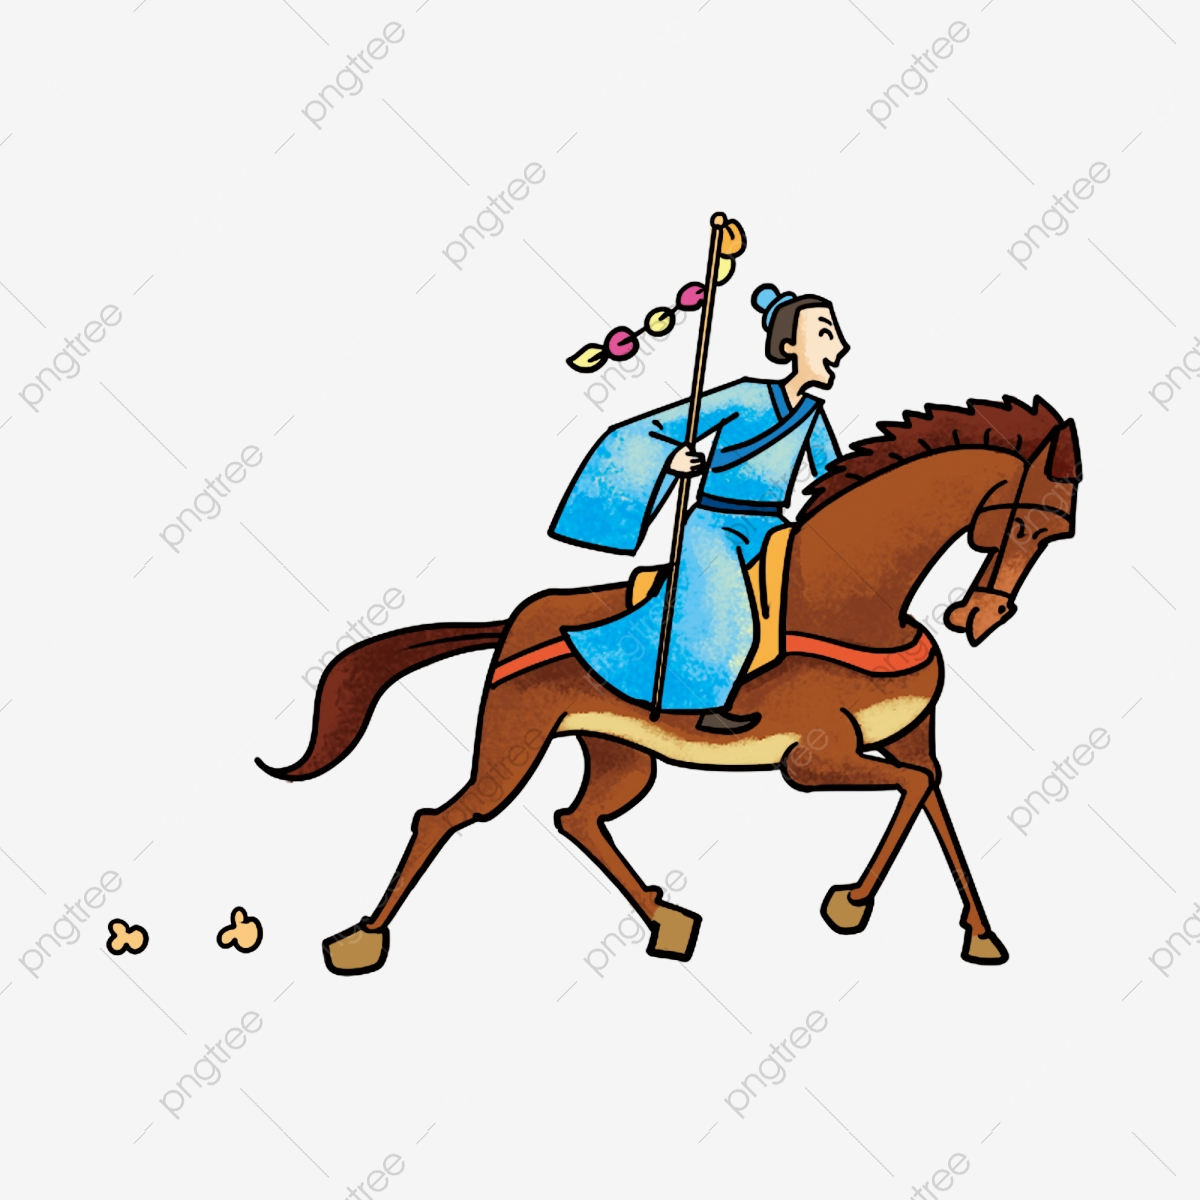 Cartoon Ancient Man Ban Chao Ancient Man Riding A Horse Class Exceeds The Western Region Equestrian Han Dynasty Hanfu Png Transparent Clipart Image And Psd File For Free Download